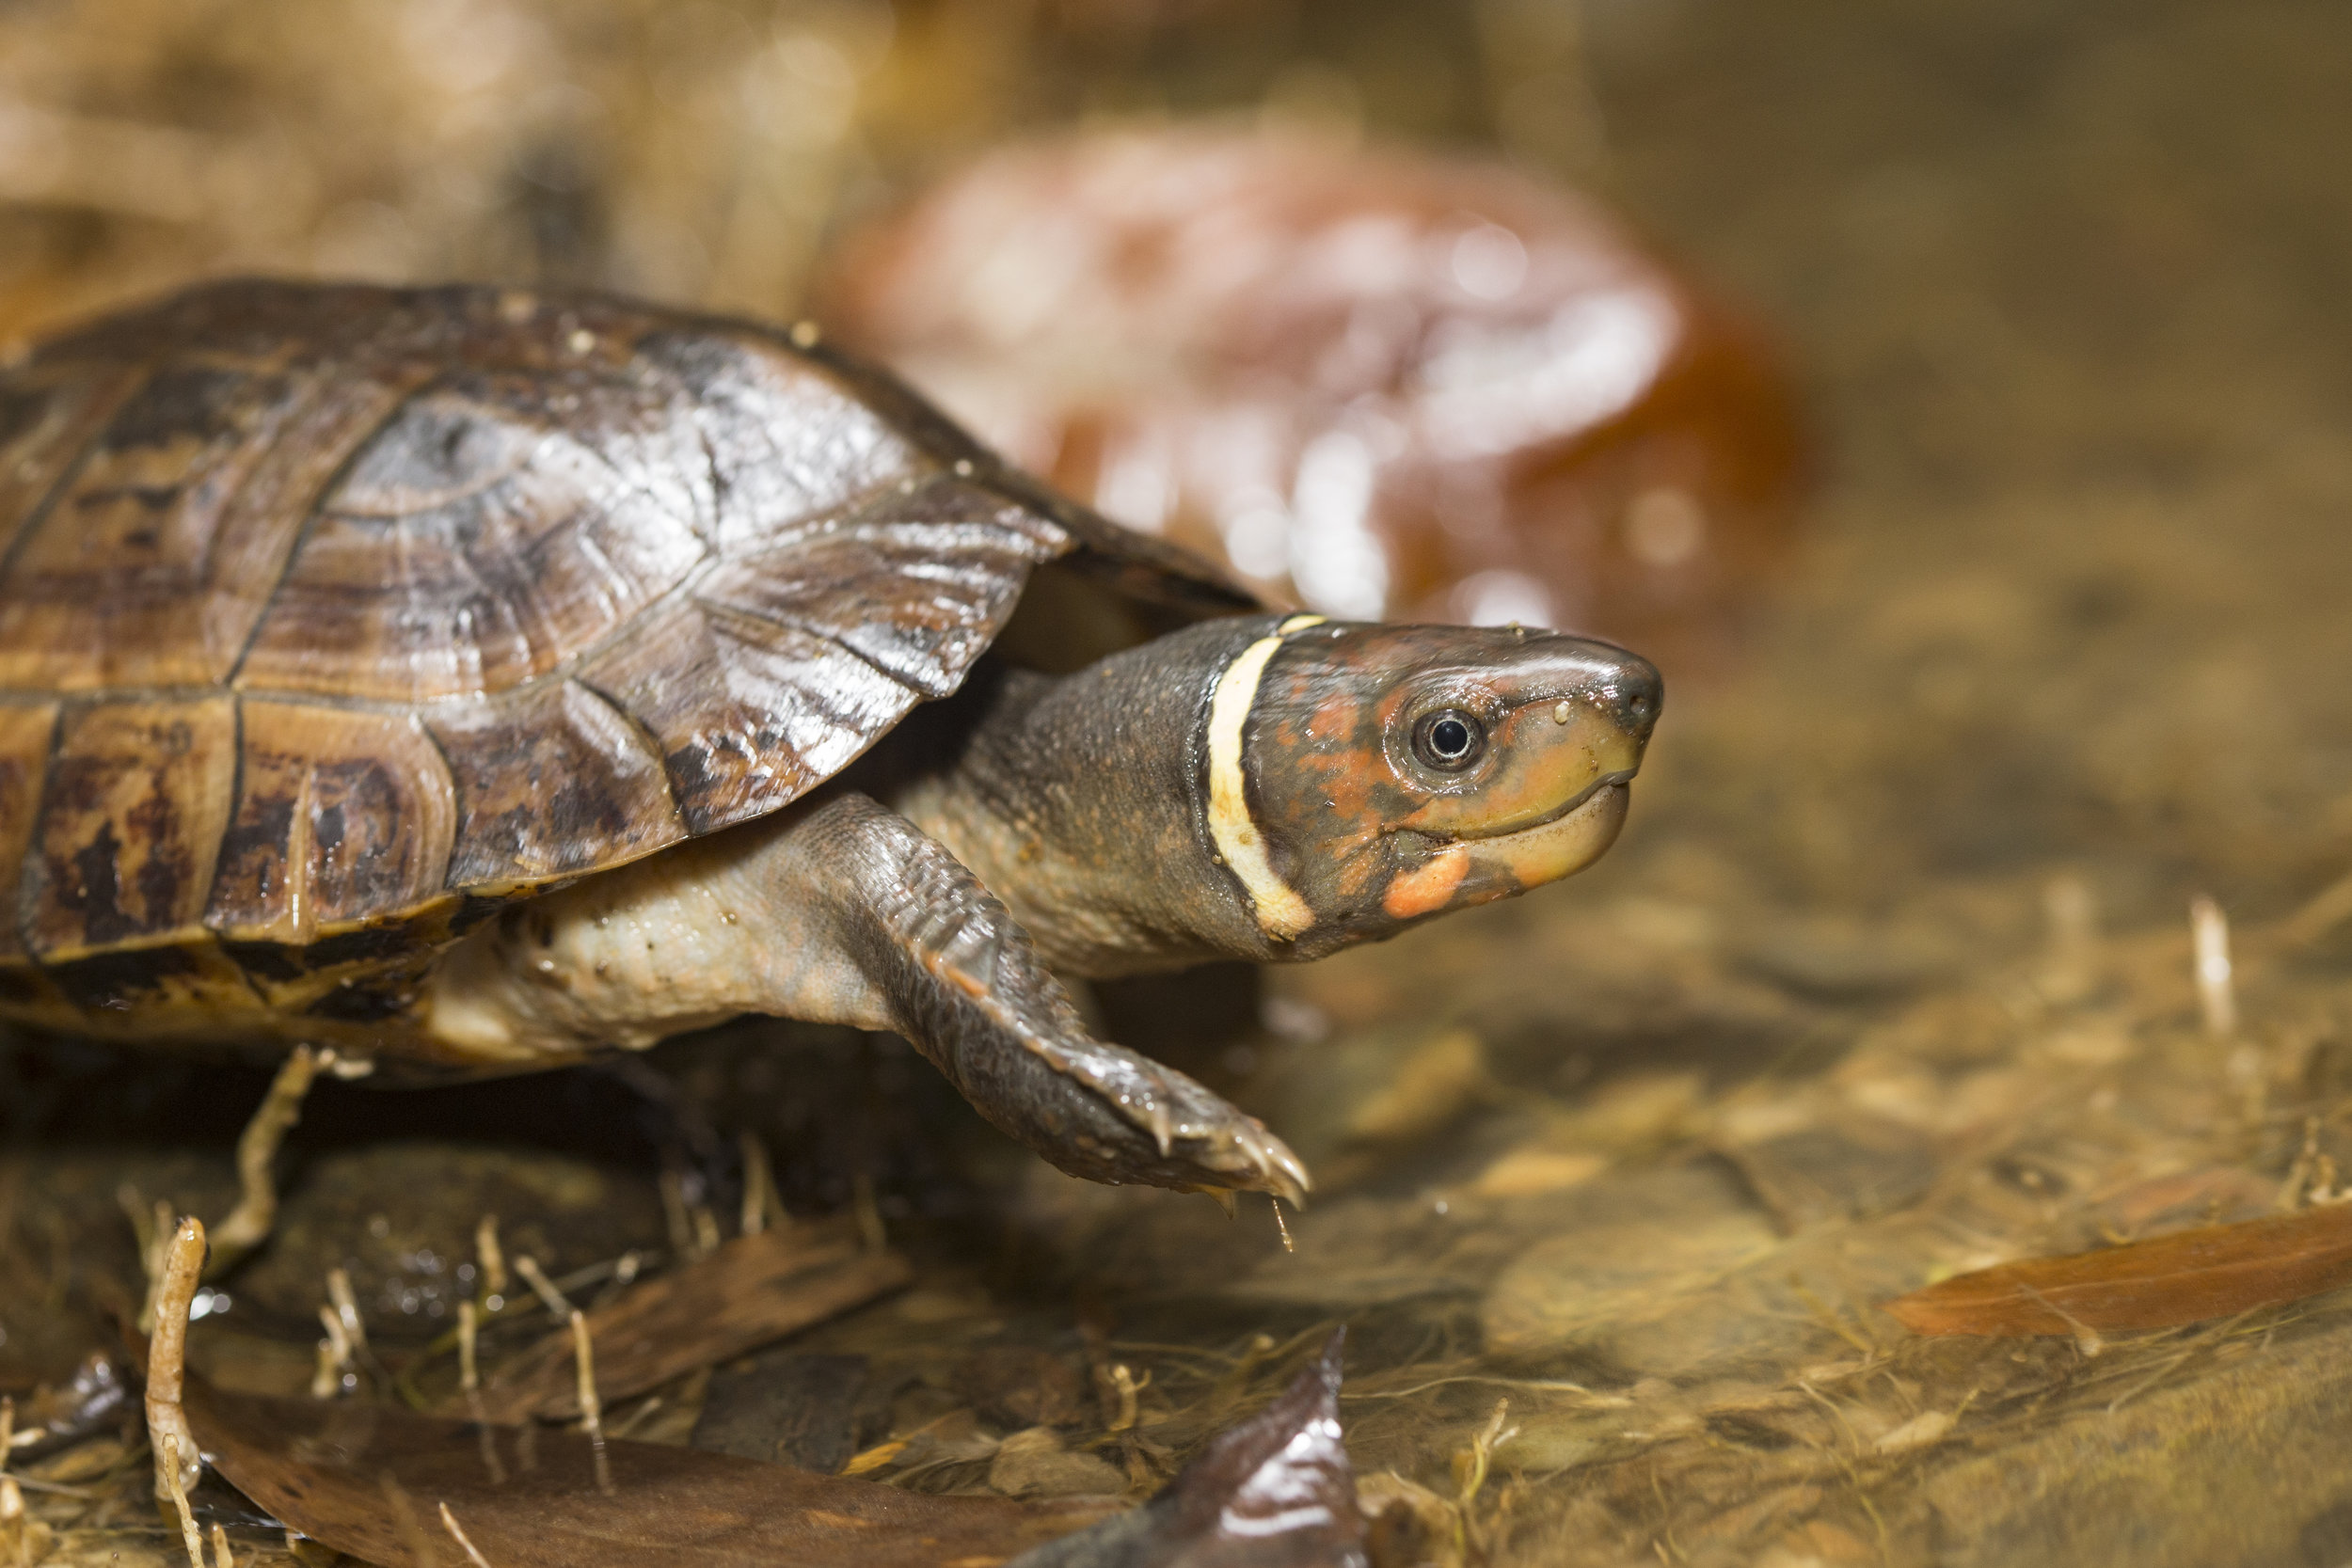 The Turtle Conservancy is working in partnership with the Katala Foundation and Dr. Sabine Schoppe to create a connected protected region in its native Palawan, Philippines.